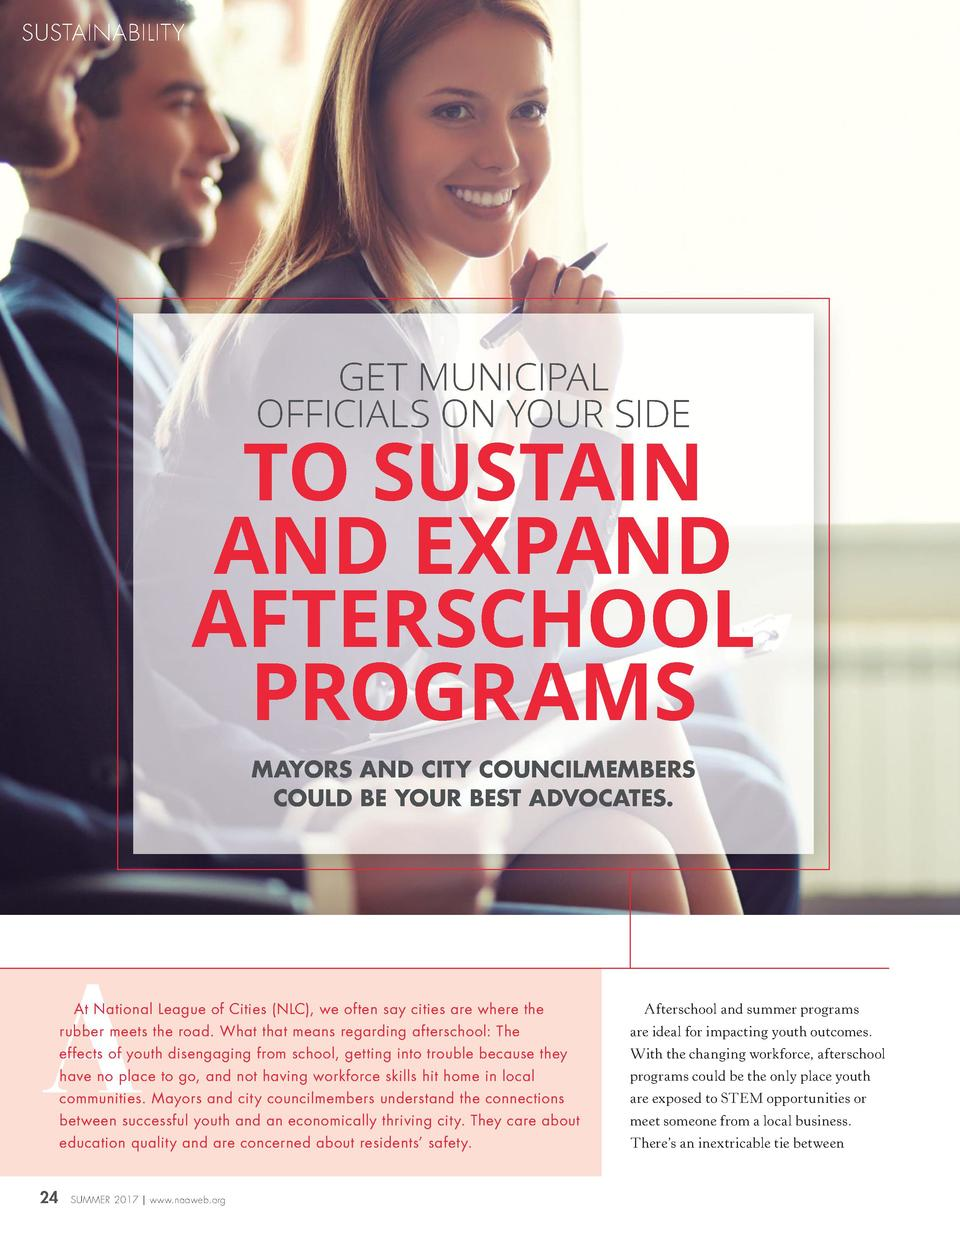 SUSTAINABILITY  GET MUNICIPAL OFFICIALS ON YOUR SIDE  TO SUSTAIN AND EXPAND AFTERSCHOOL PROGRAMS MAYORS AND CITY COUNCILME...